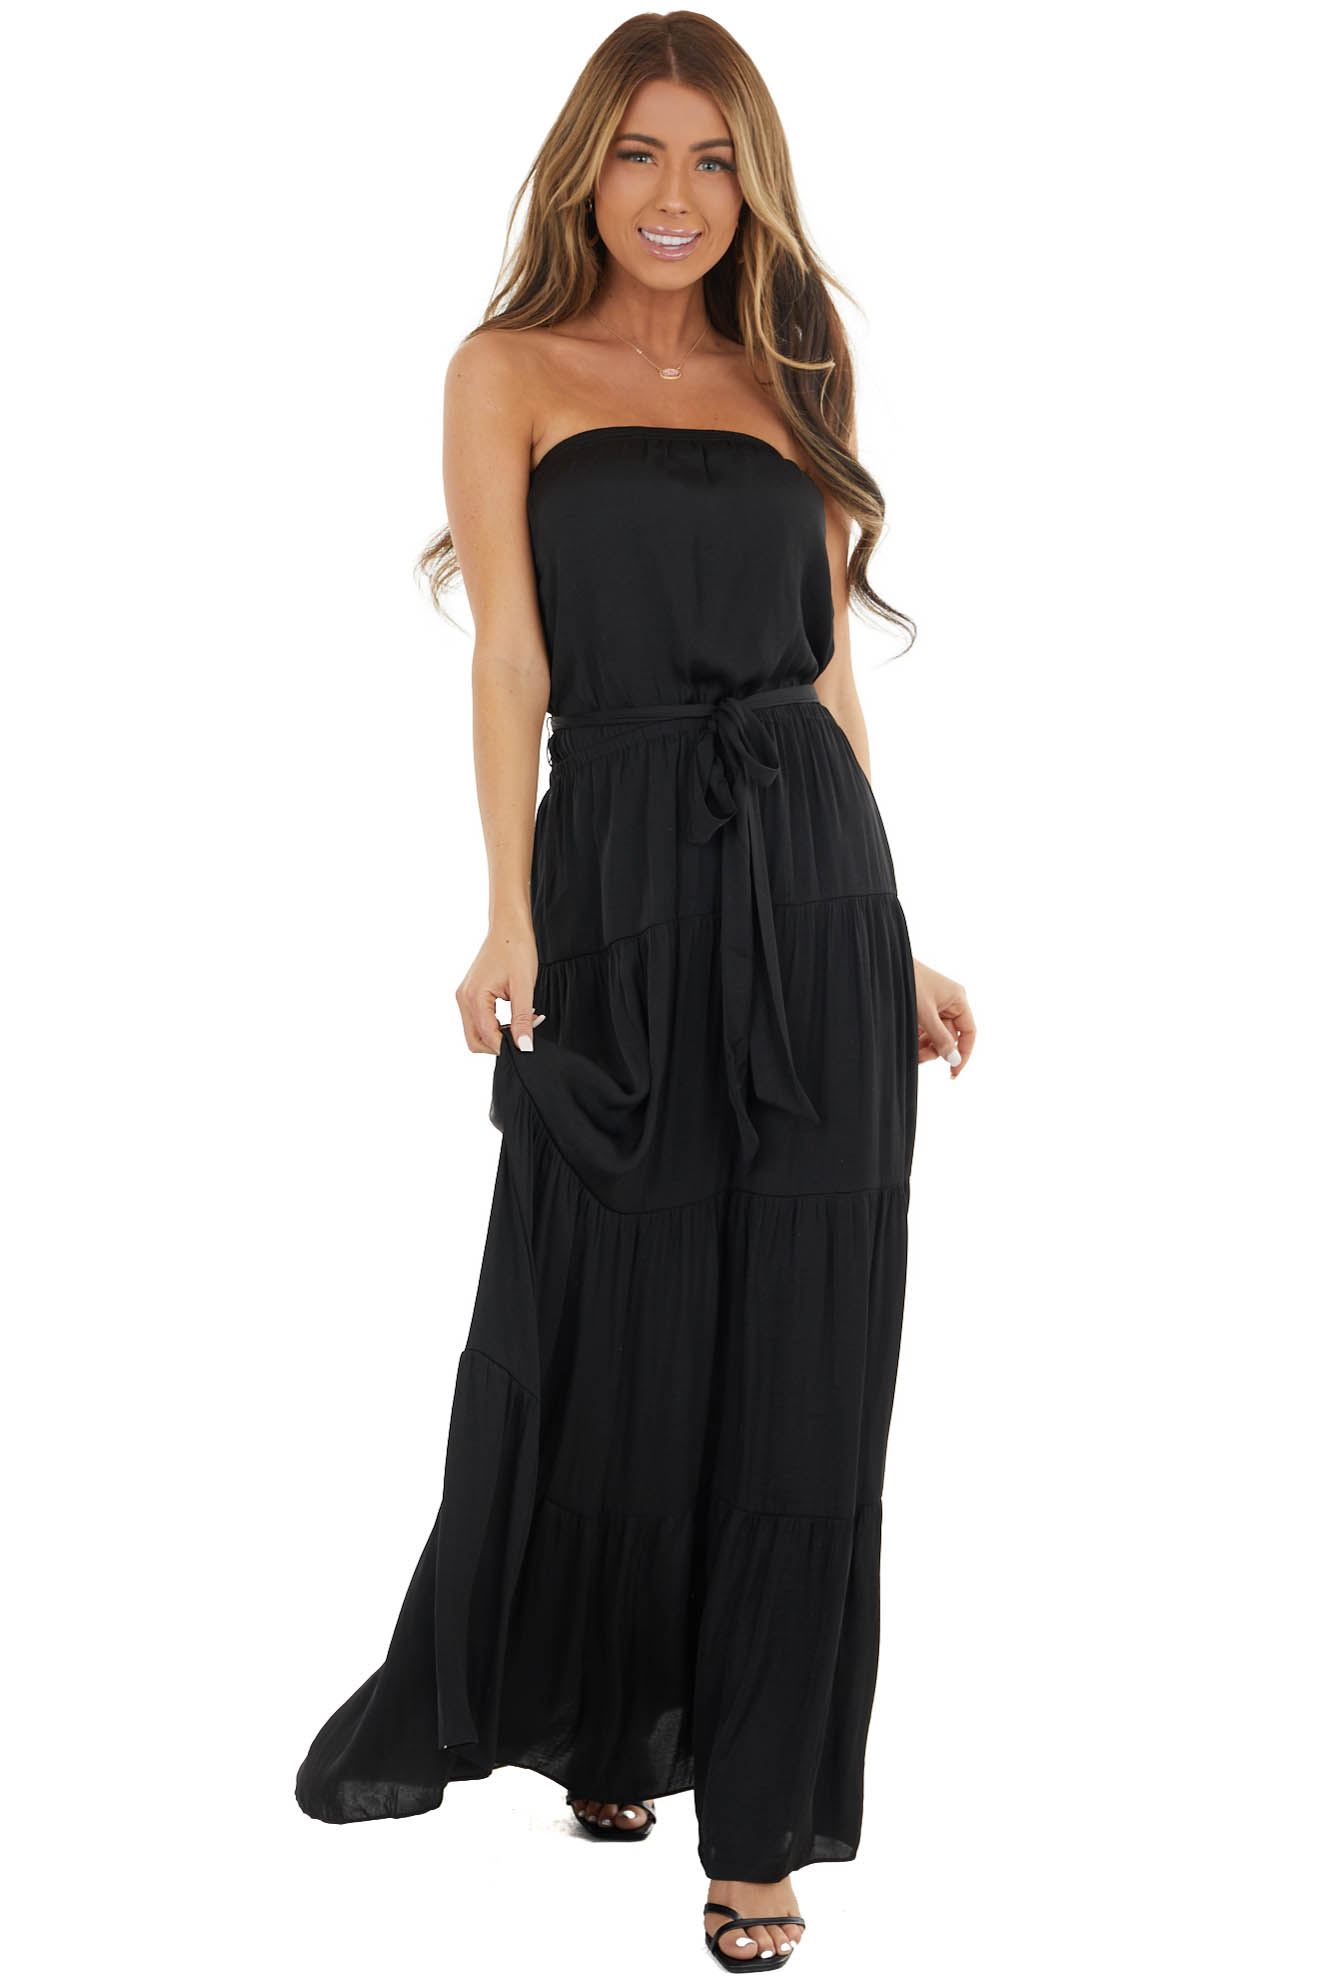 Black Tiered Tube Top Maxi Dress with Elastic Waist